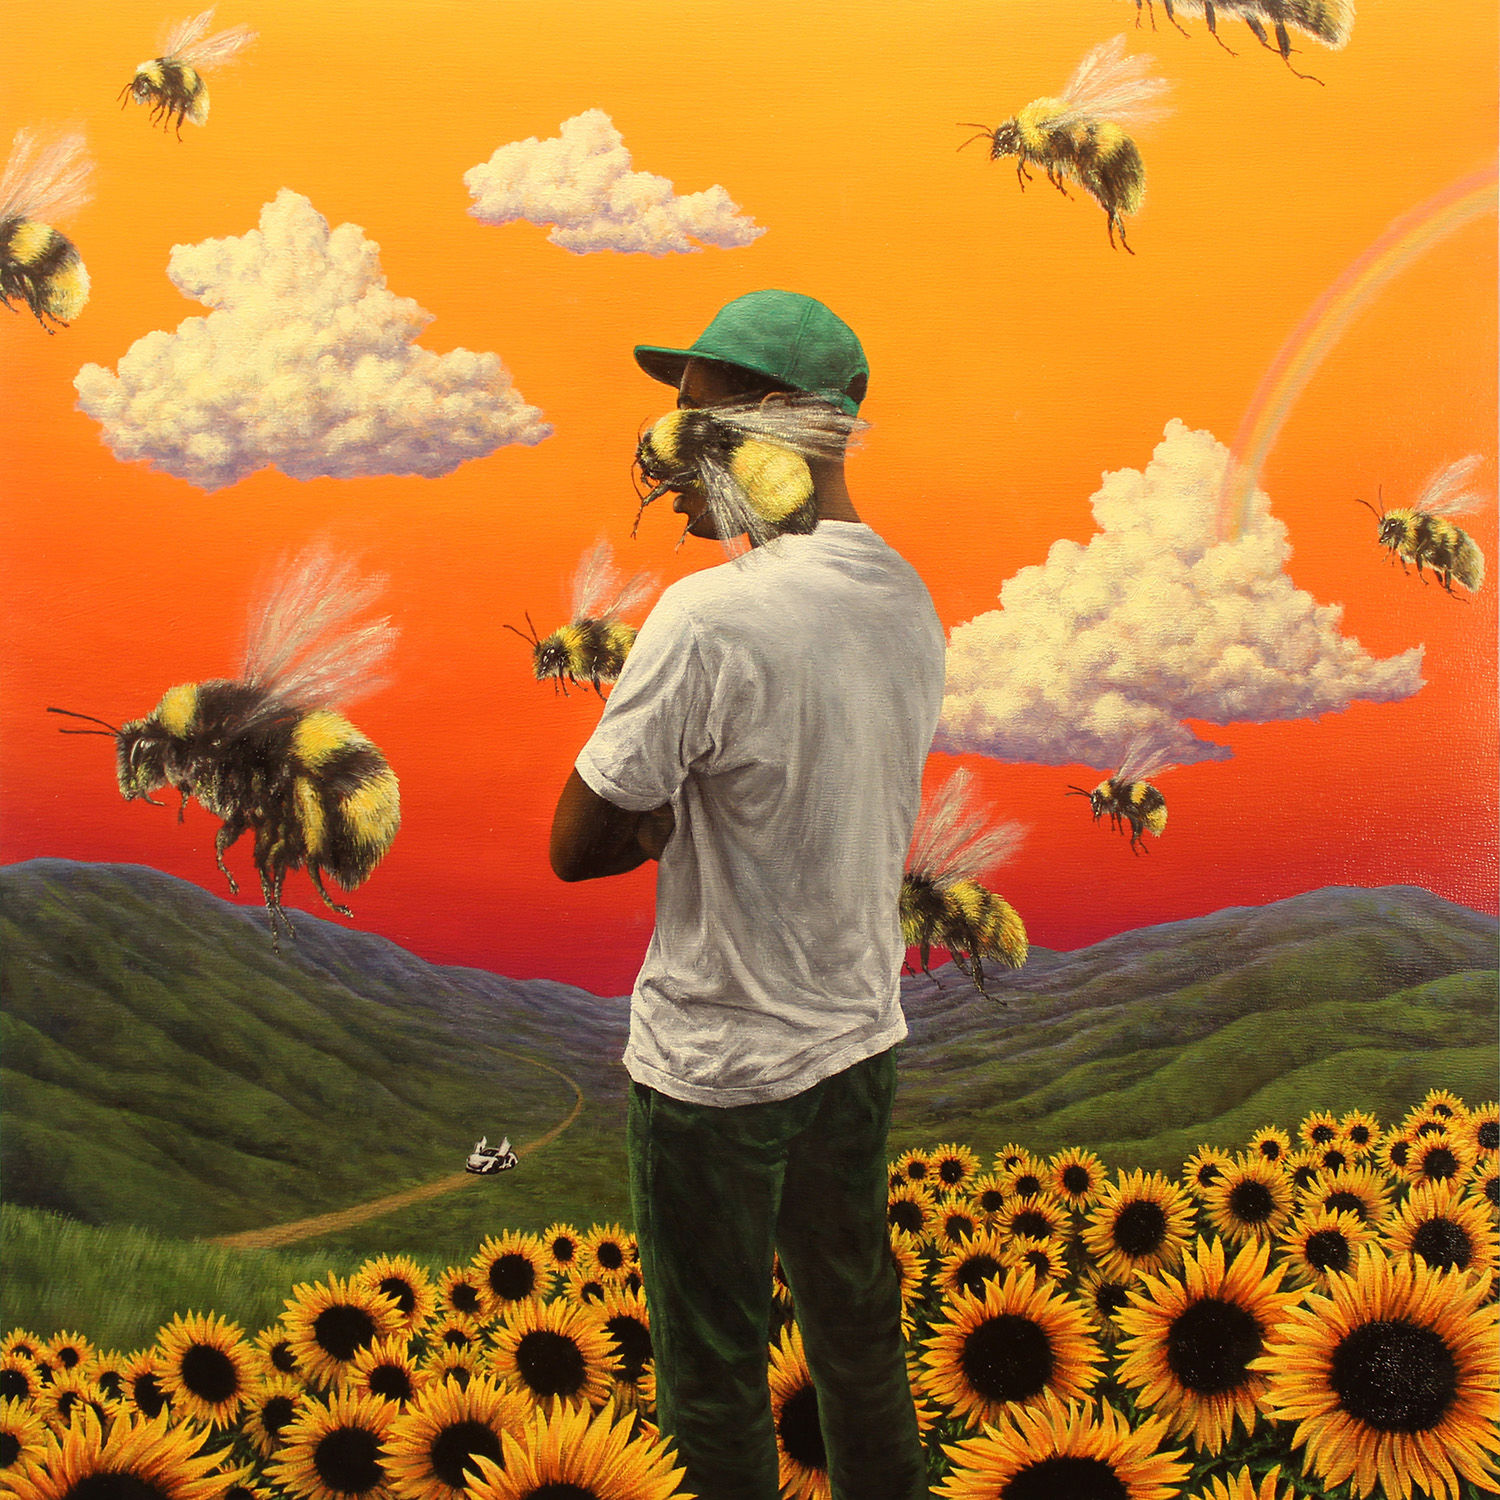 indie-music-and-television-blog-tyler-the-creator-flower-boy-album-cover